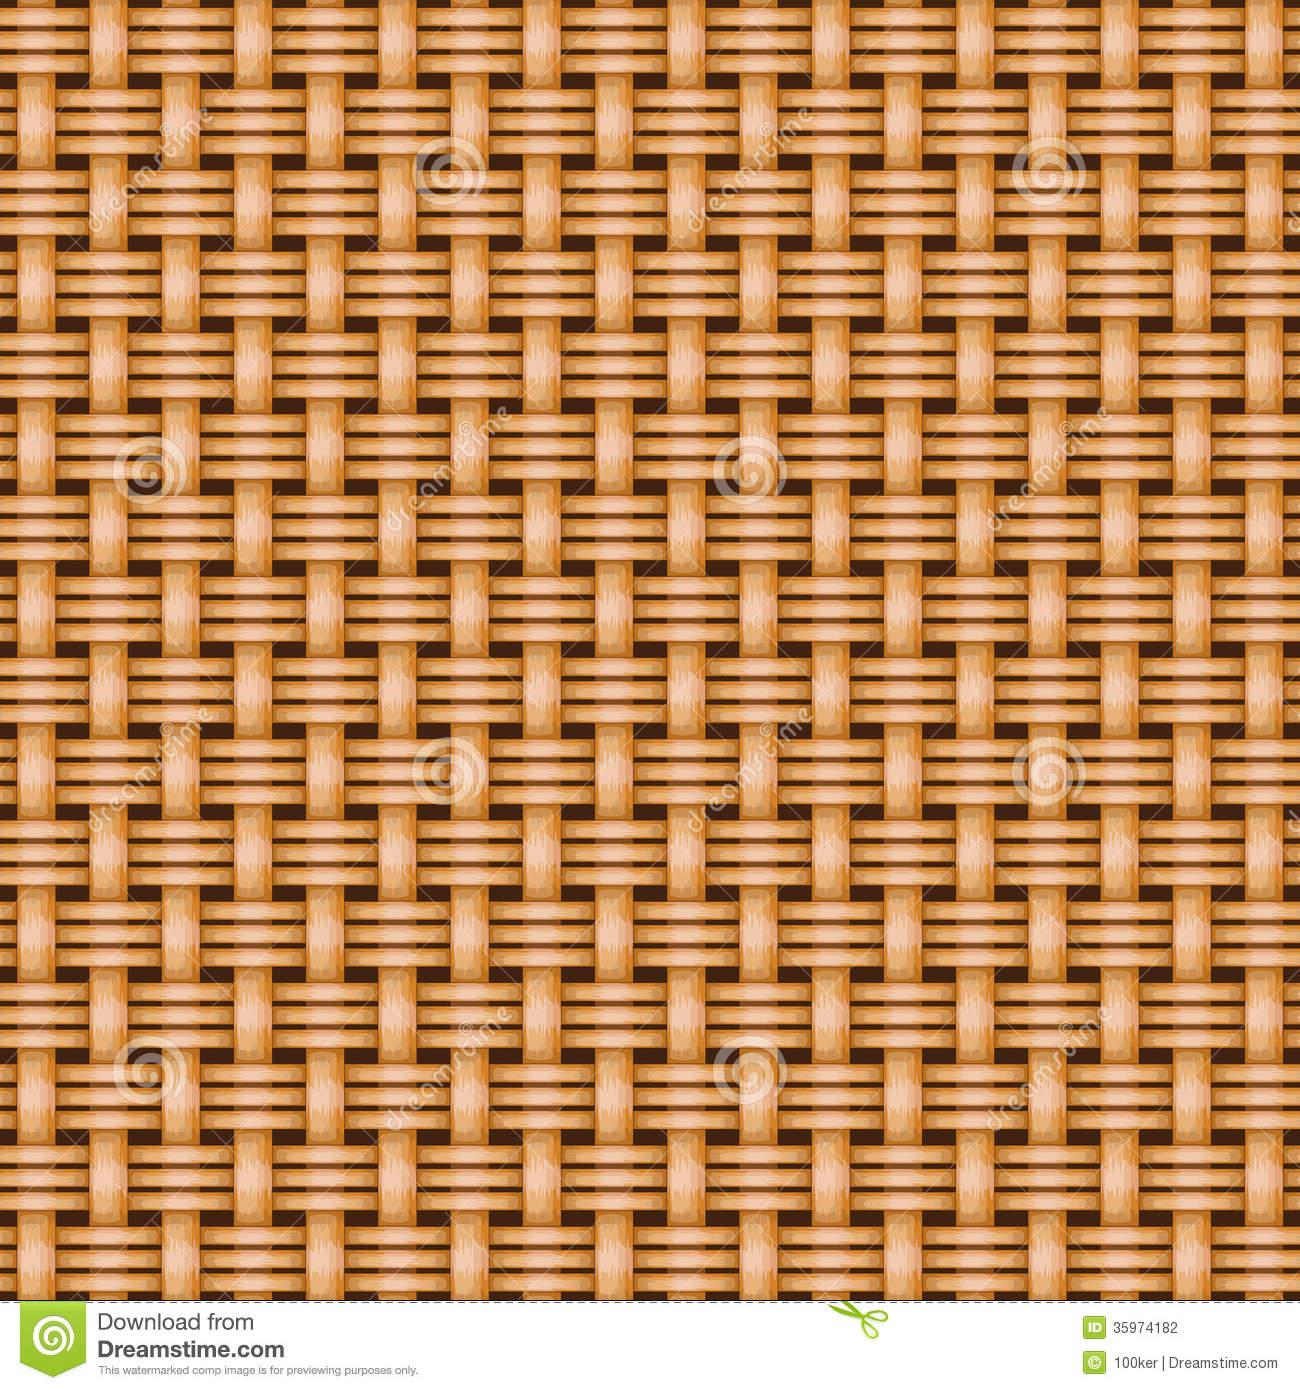 Rattan Basket Weaving Patterns : Wicker basket weaving pattern seamless texture stock